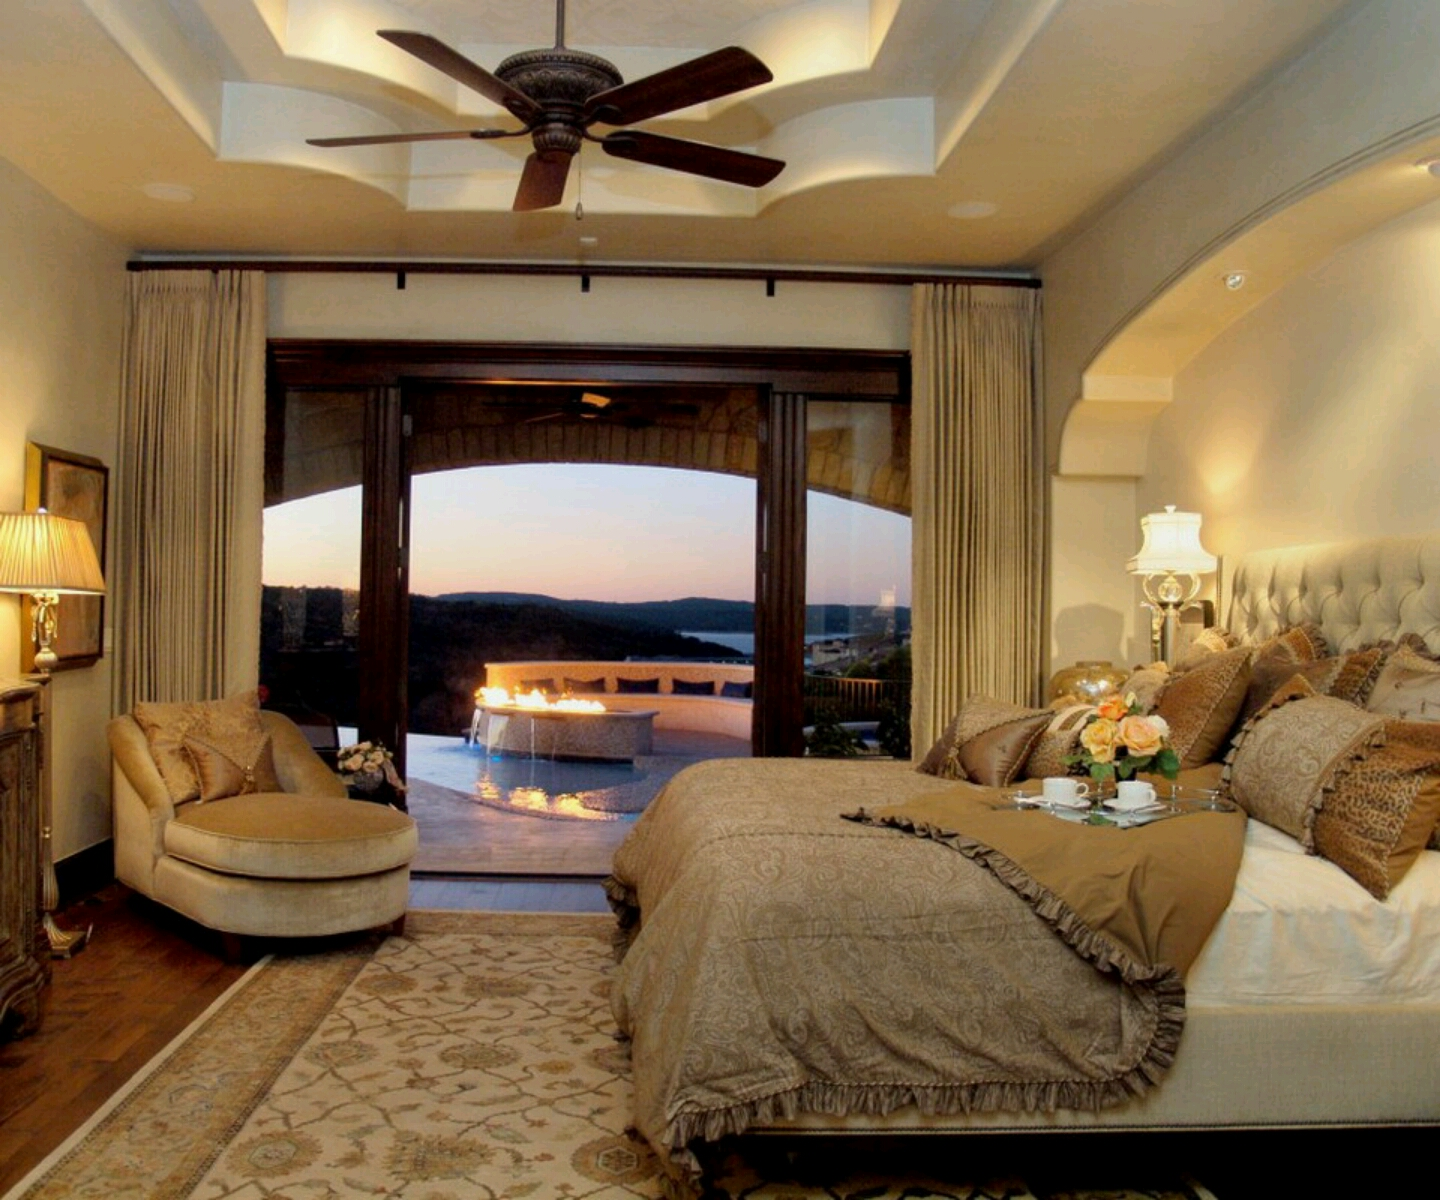 New home designs latest modern bedrooms designs ceiling Latest small bedroom designs